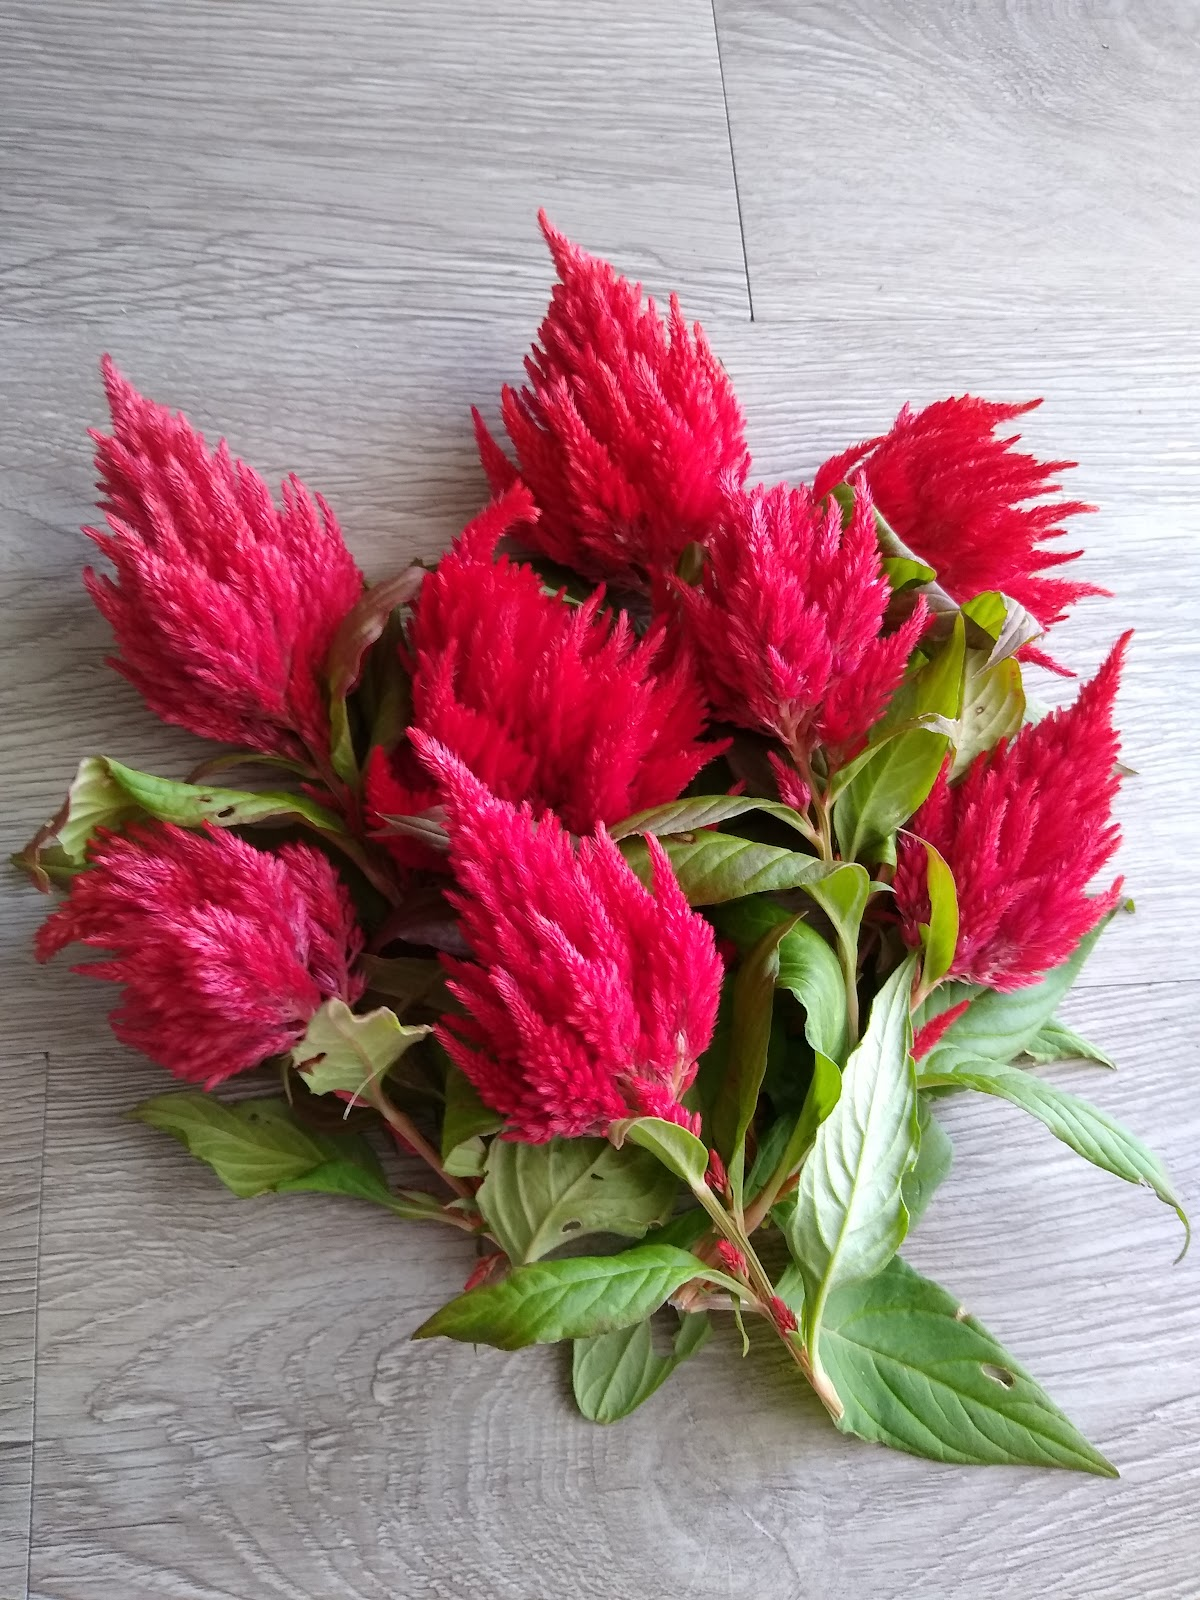 harvested celosia picture